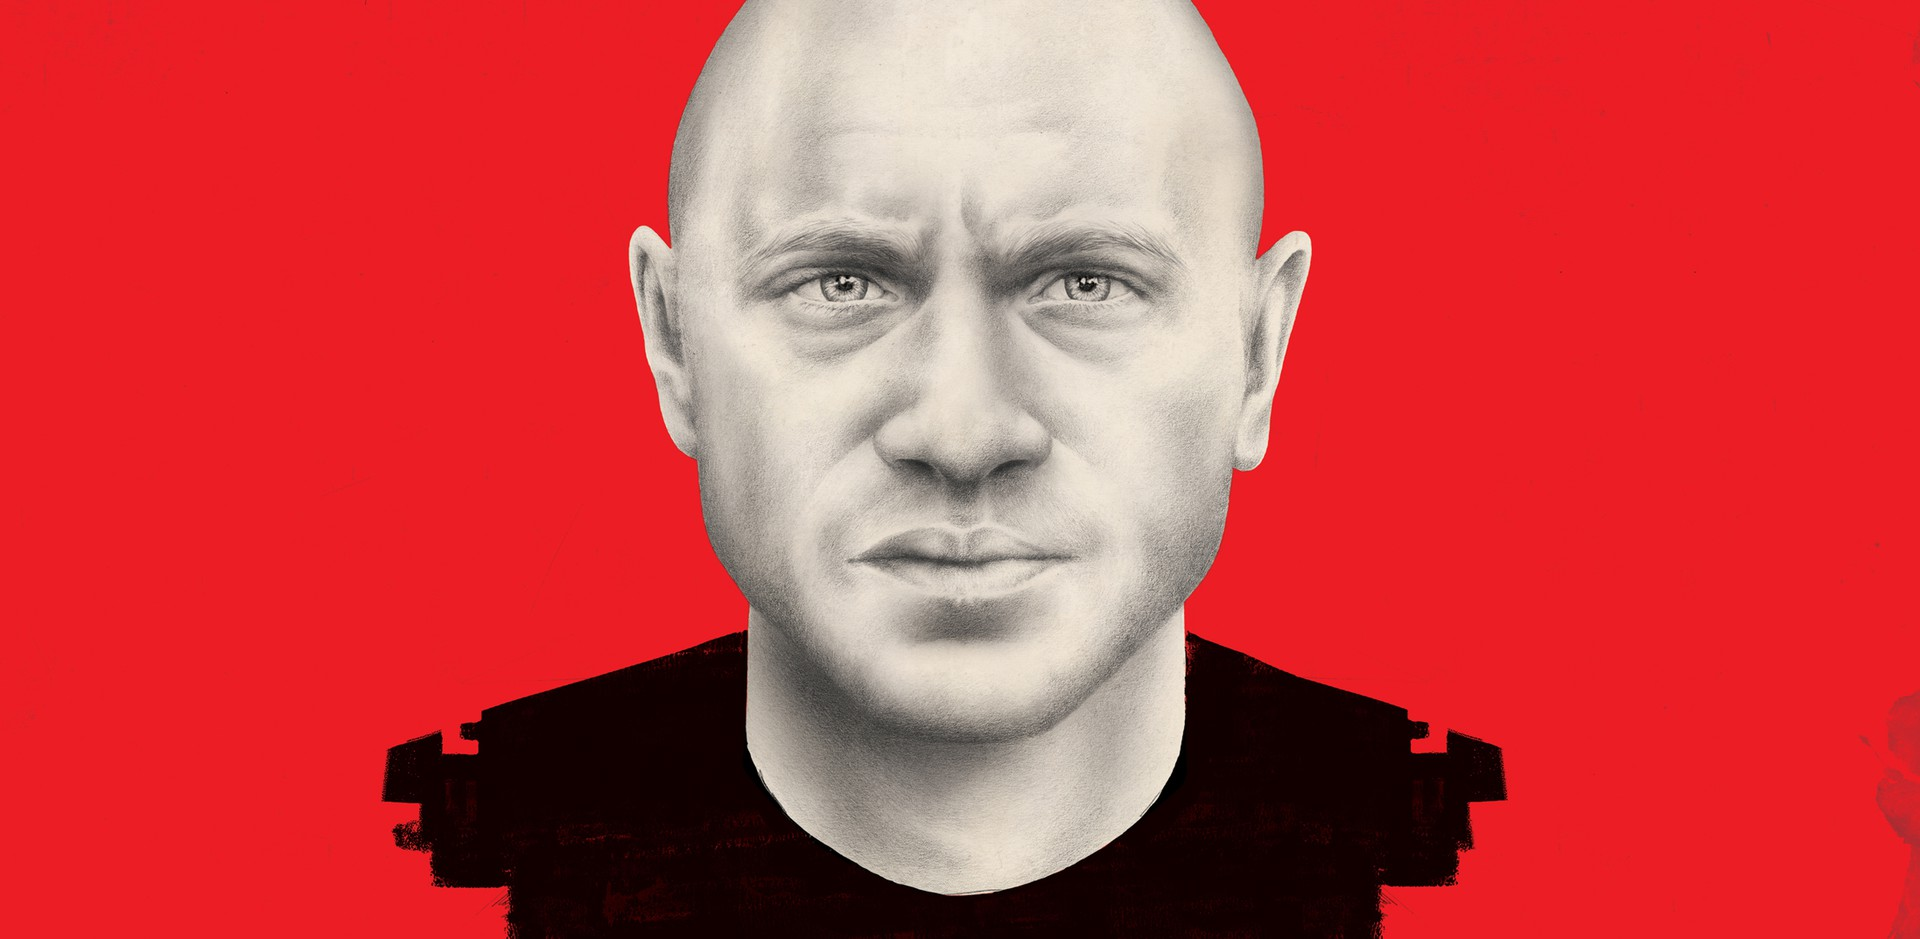 Andrew Anglin The Making Of An American Nazi The Atlantic